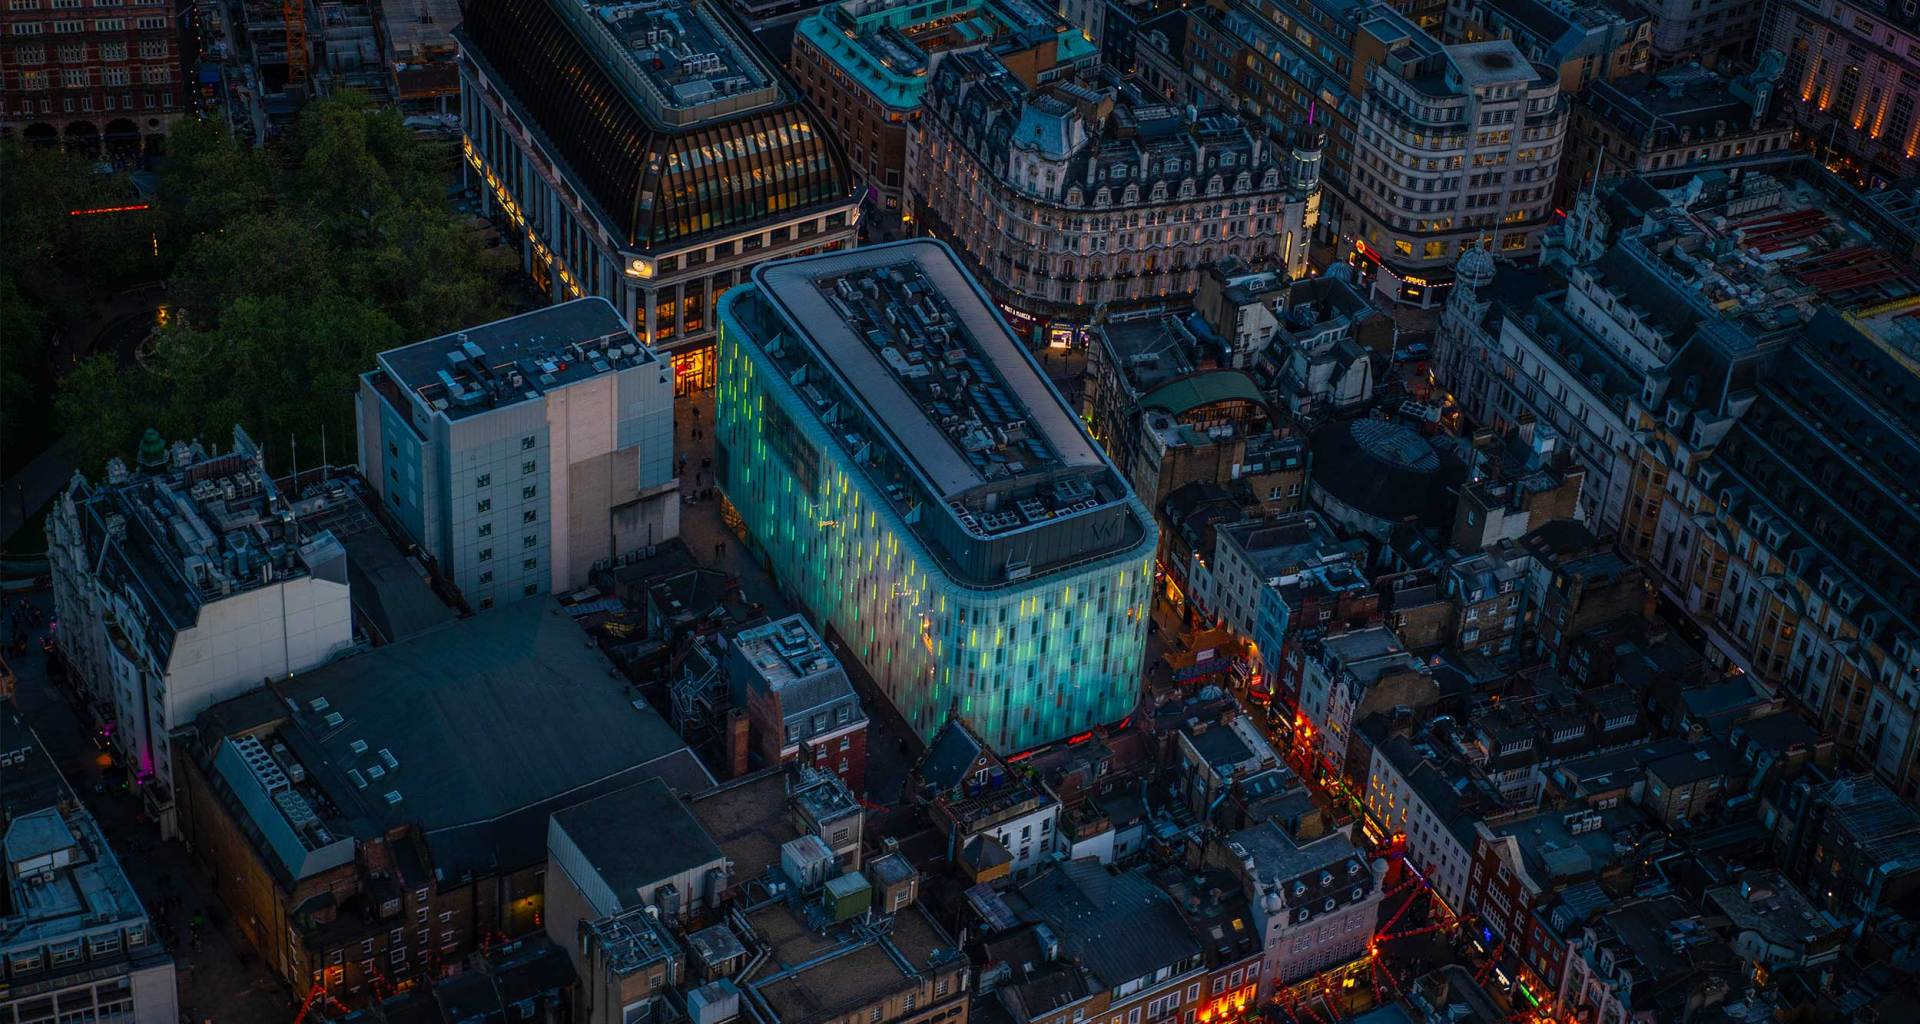 Aerial view of the W London Hotel and Leicester Square.